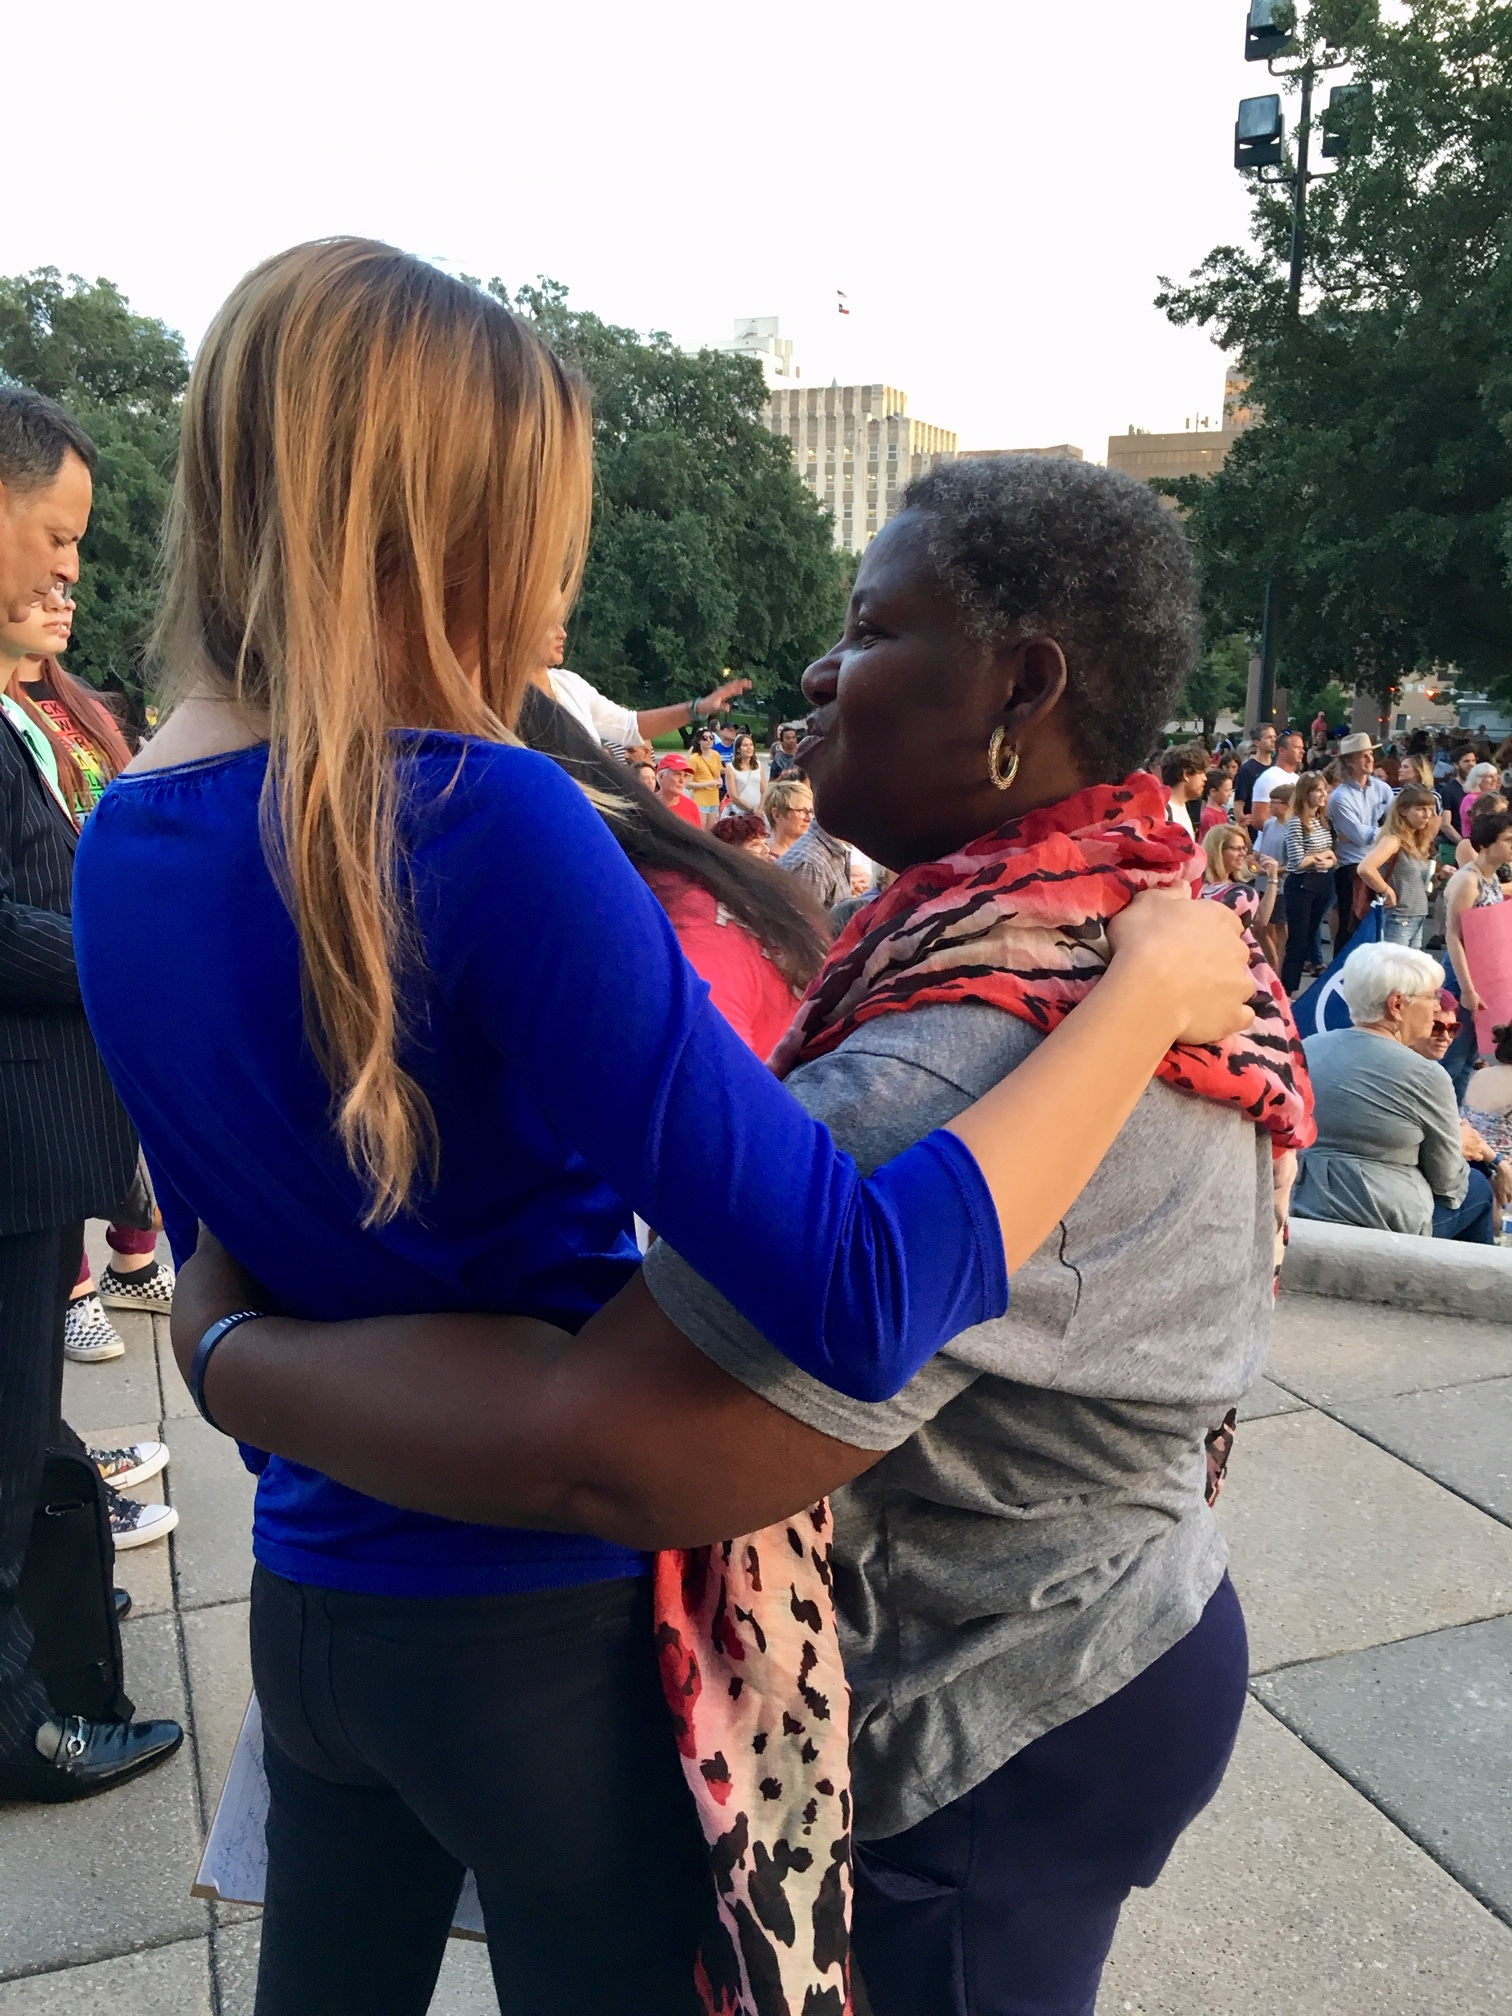 Liz meeting an attendee at the Lights for Liberty rally in Austin, TX